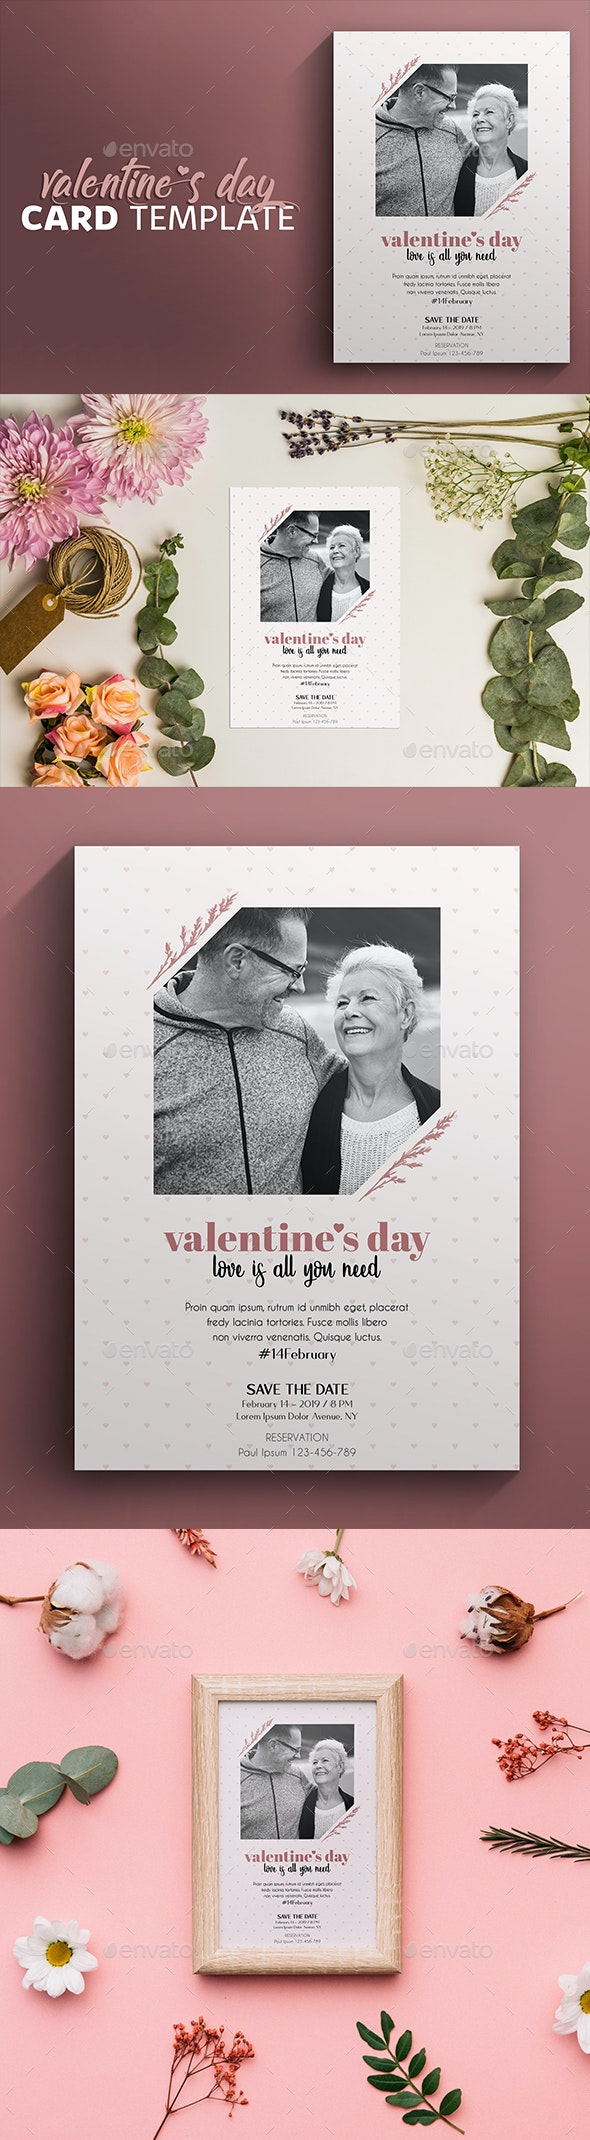 Invitation & Greeting Card Template for Valentines Day - Cards & Invites Print Templates